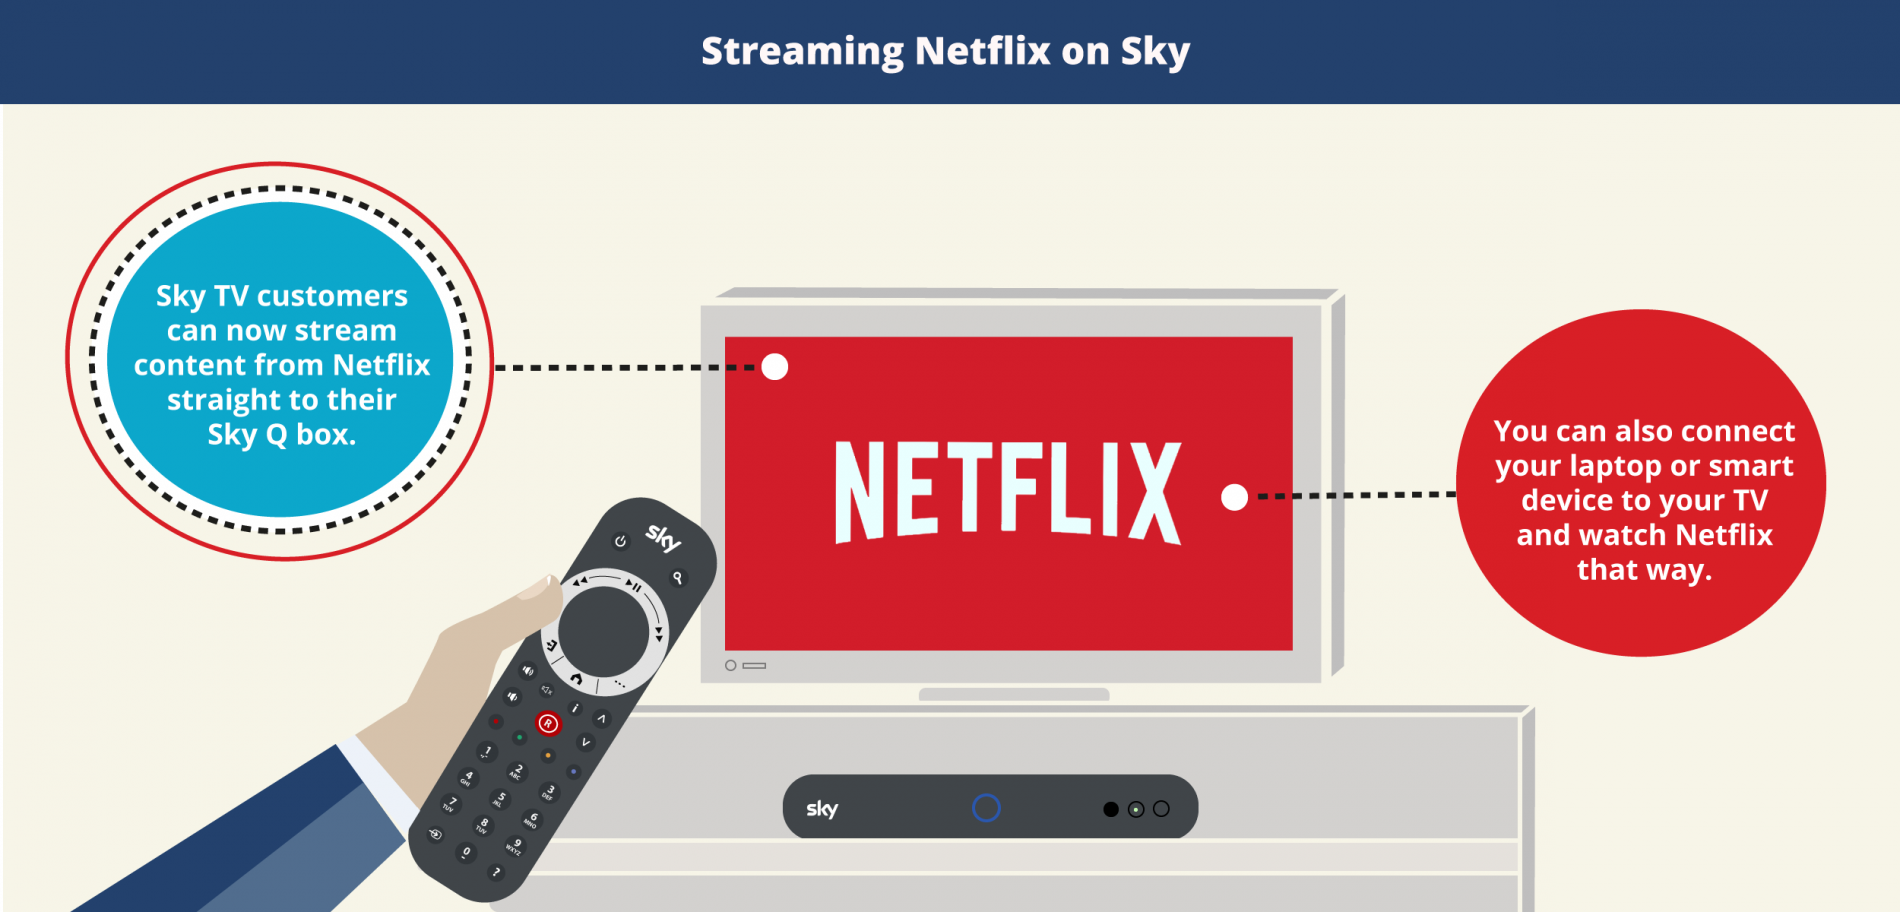 Streaming Netflix on Sky